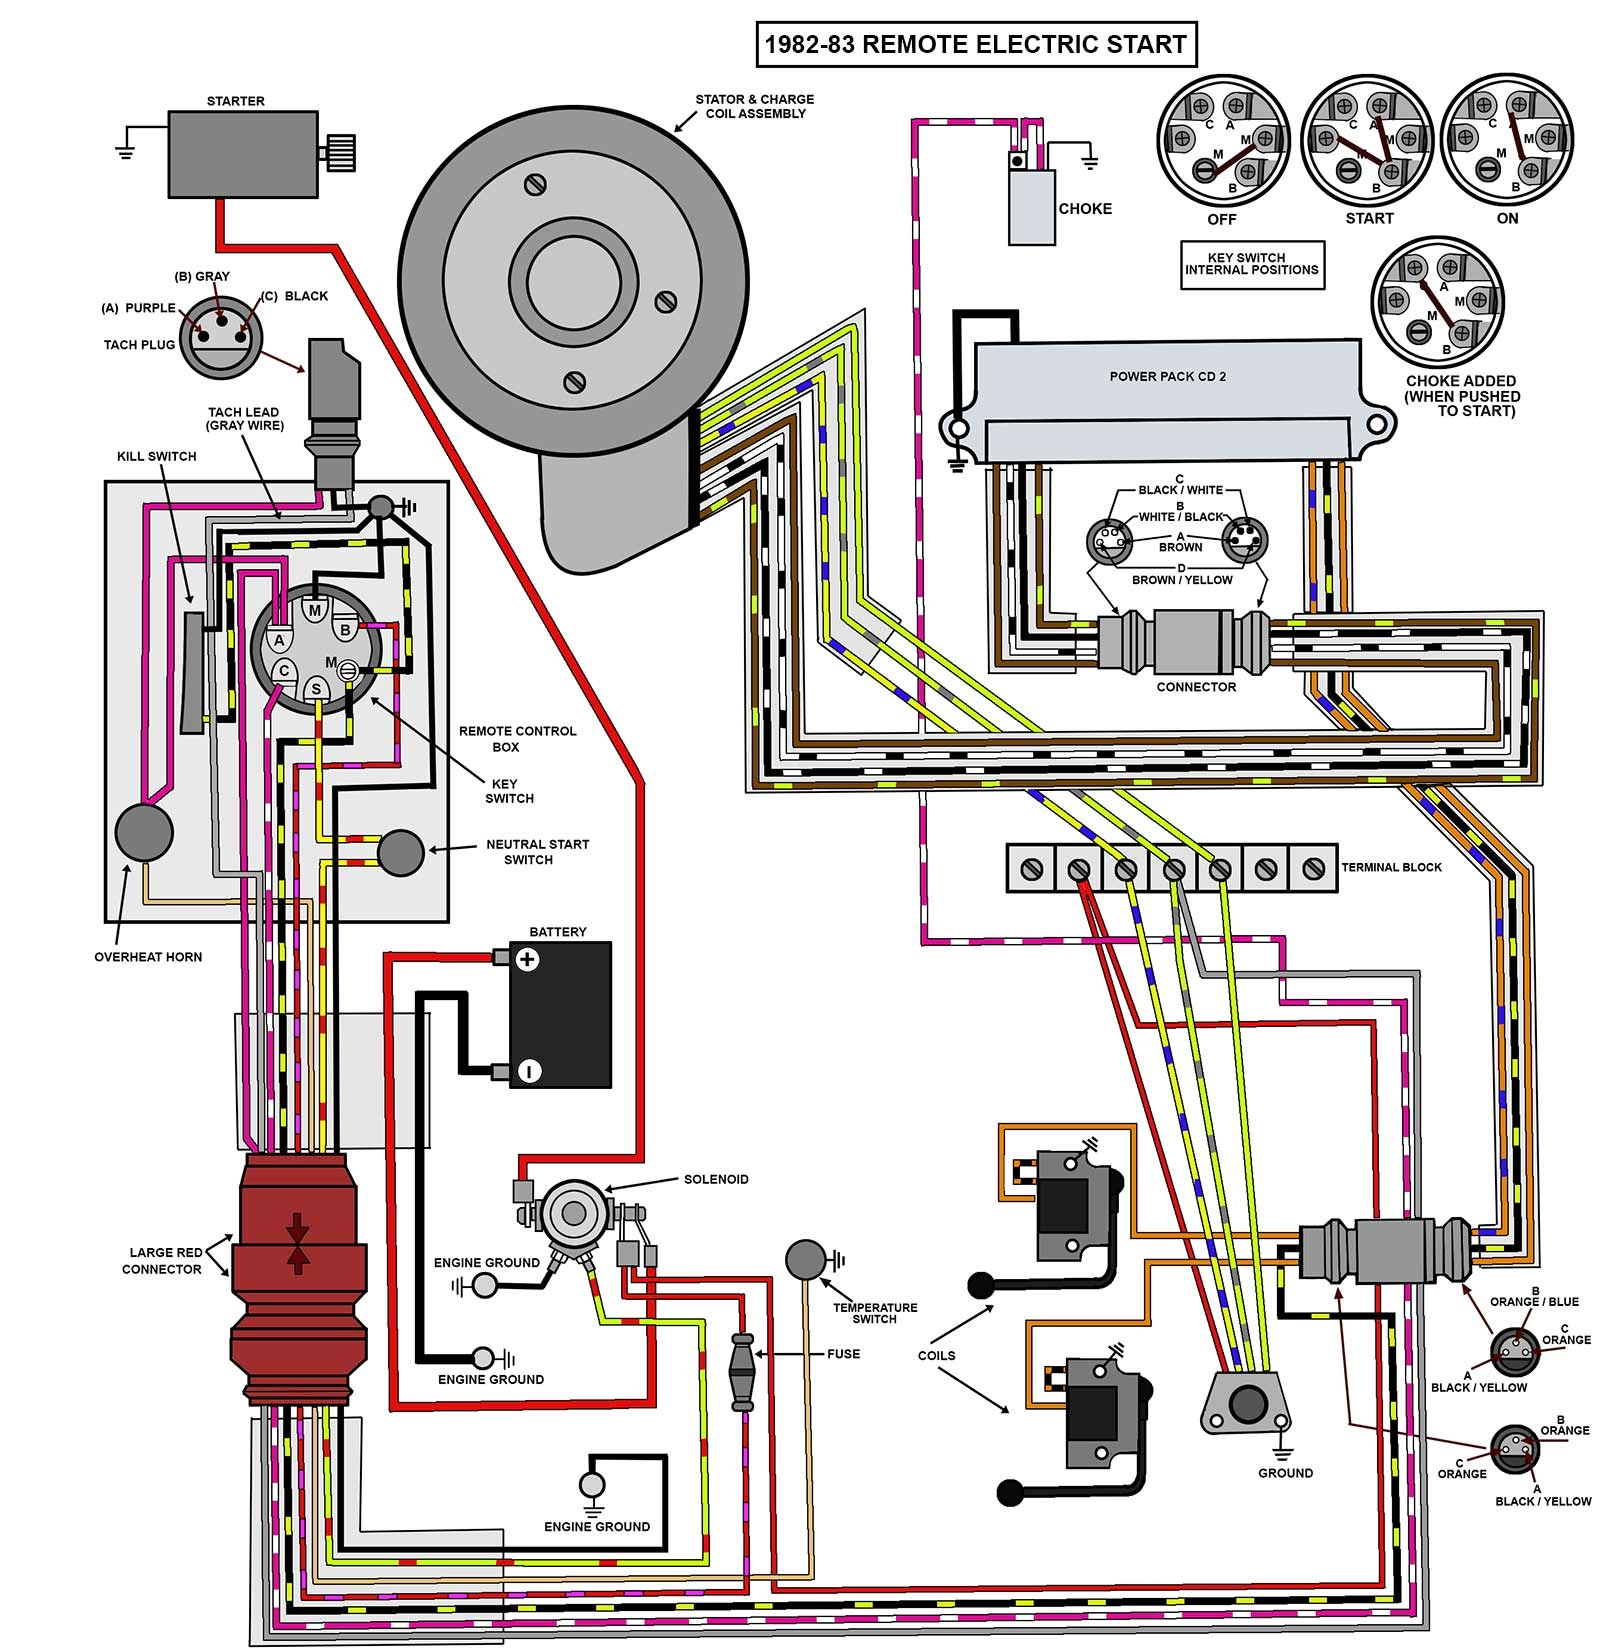 evinrude wiring diagram outboards Download-25 hp johnson wiring diagram free vehicle wiring diagrams u2022 rh narfiyanstudio 50 HP Mercury Outboard Diagram Mercury Control Box Diagram 18-a